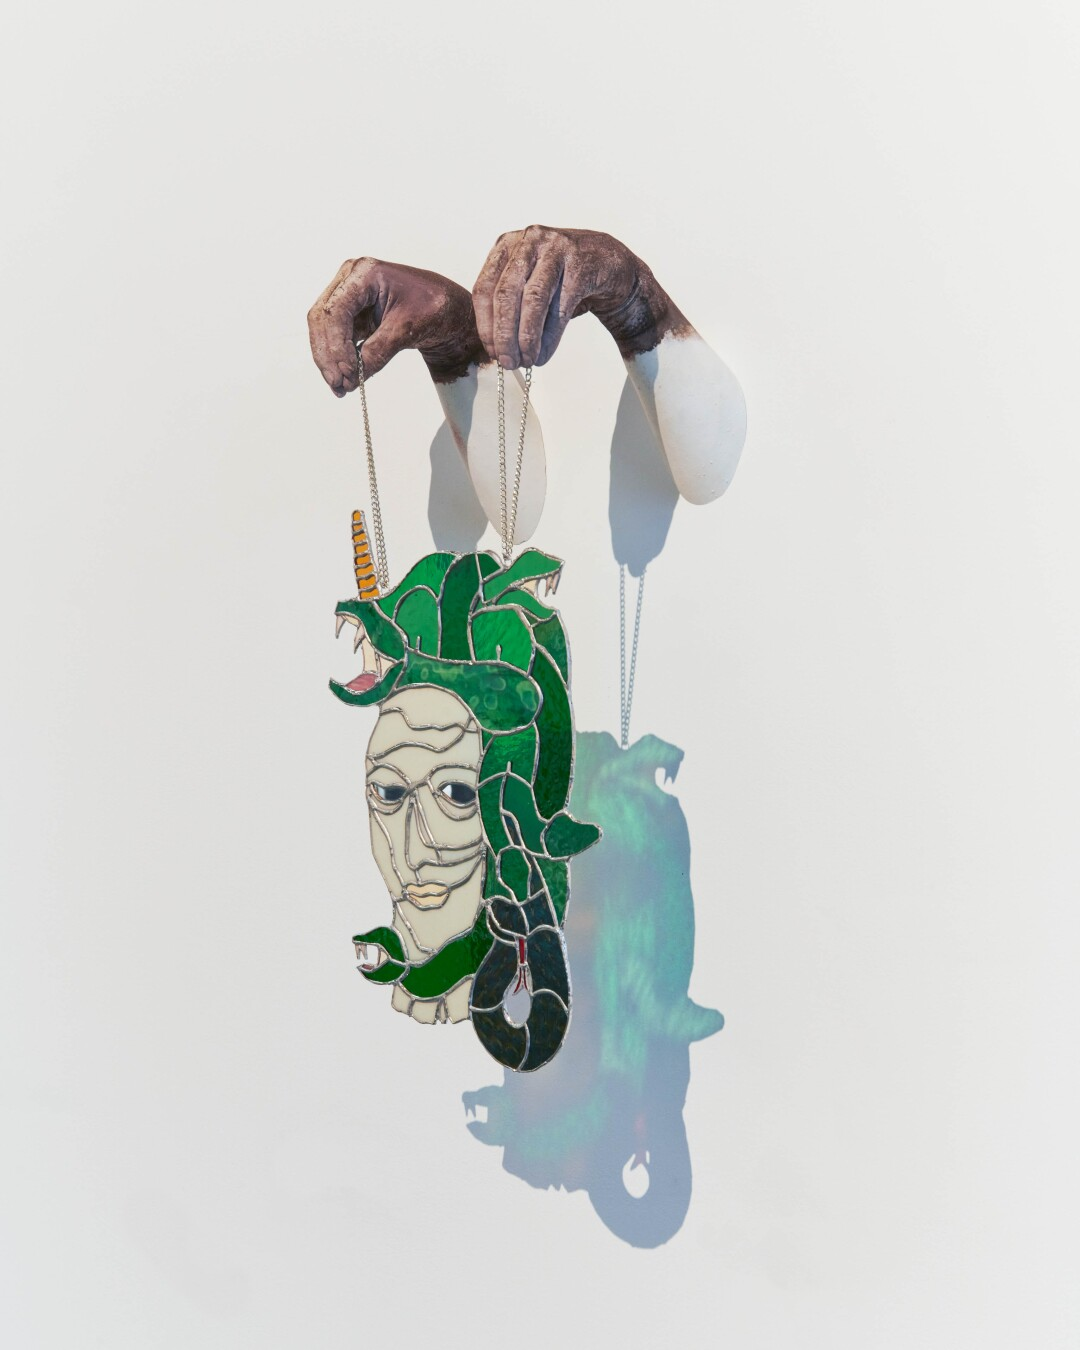 """Timo Fahler alter ego series - Medusa, 2021 plaster, stained glass, mirror, dye, chain, twine 24""""H x 14""""W x 10""""D"""